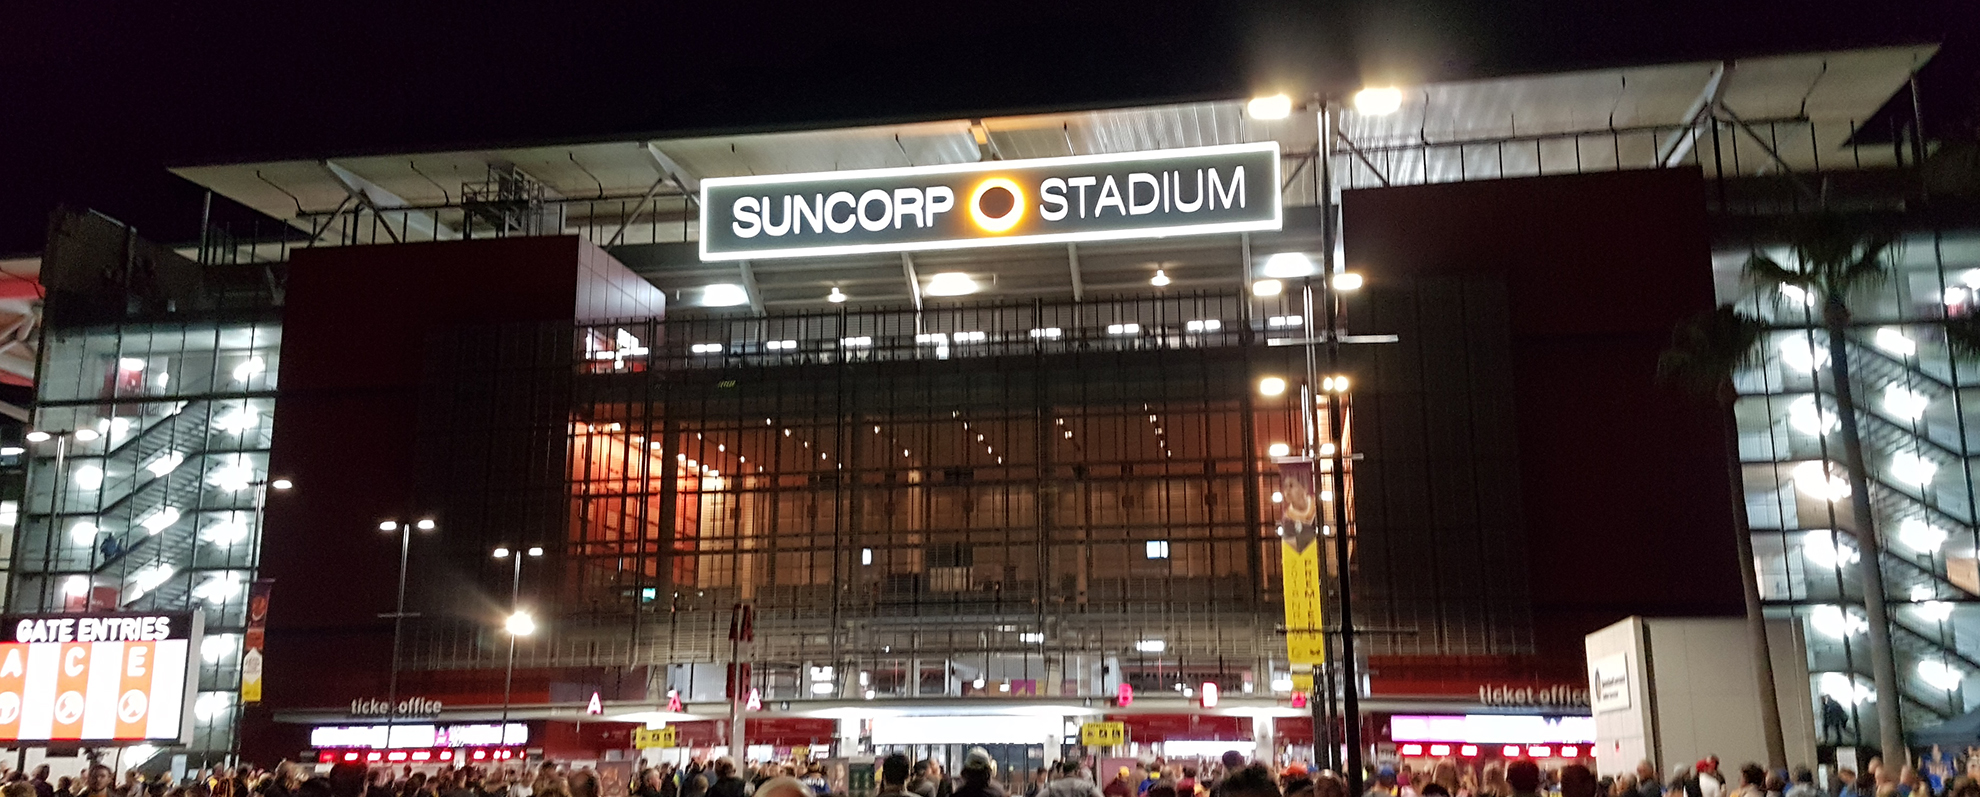 A Trip to the Footy to Watch the Brisbane Broncos take on the Parramatta Eels. Image Credit: Brian MacNamara.